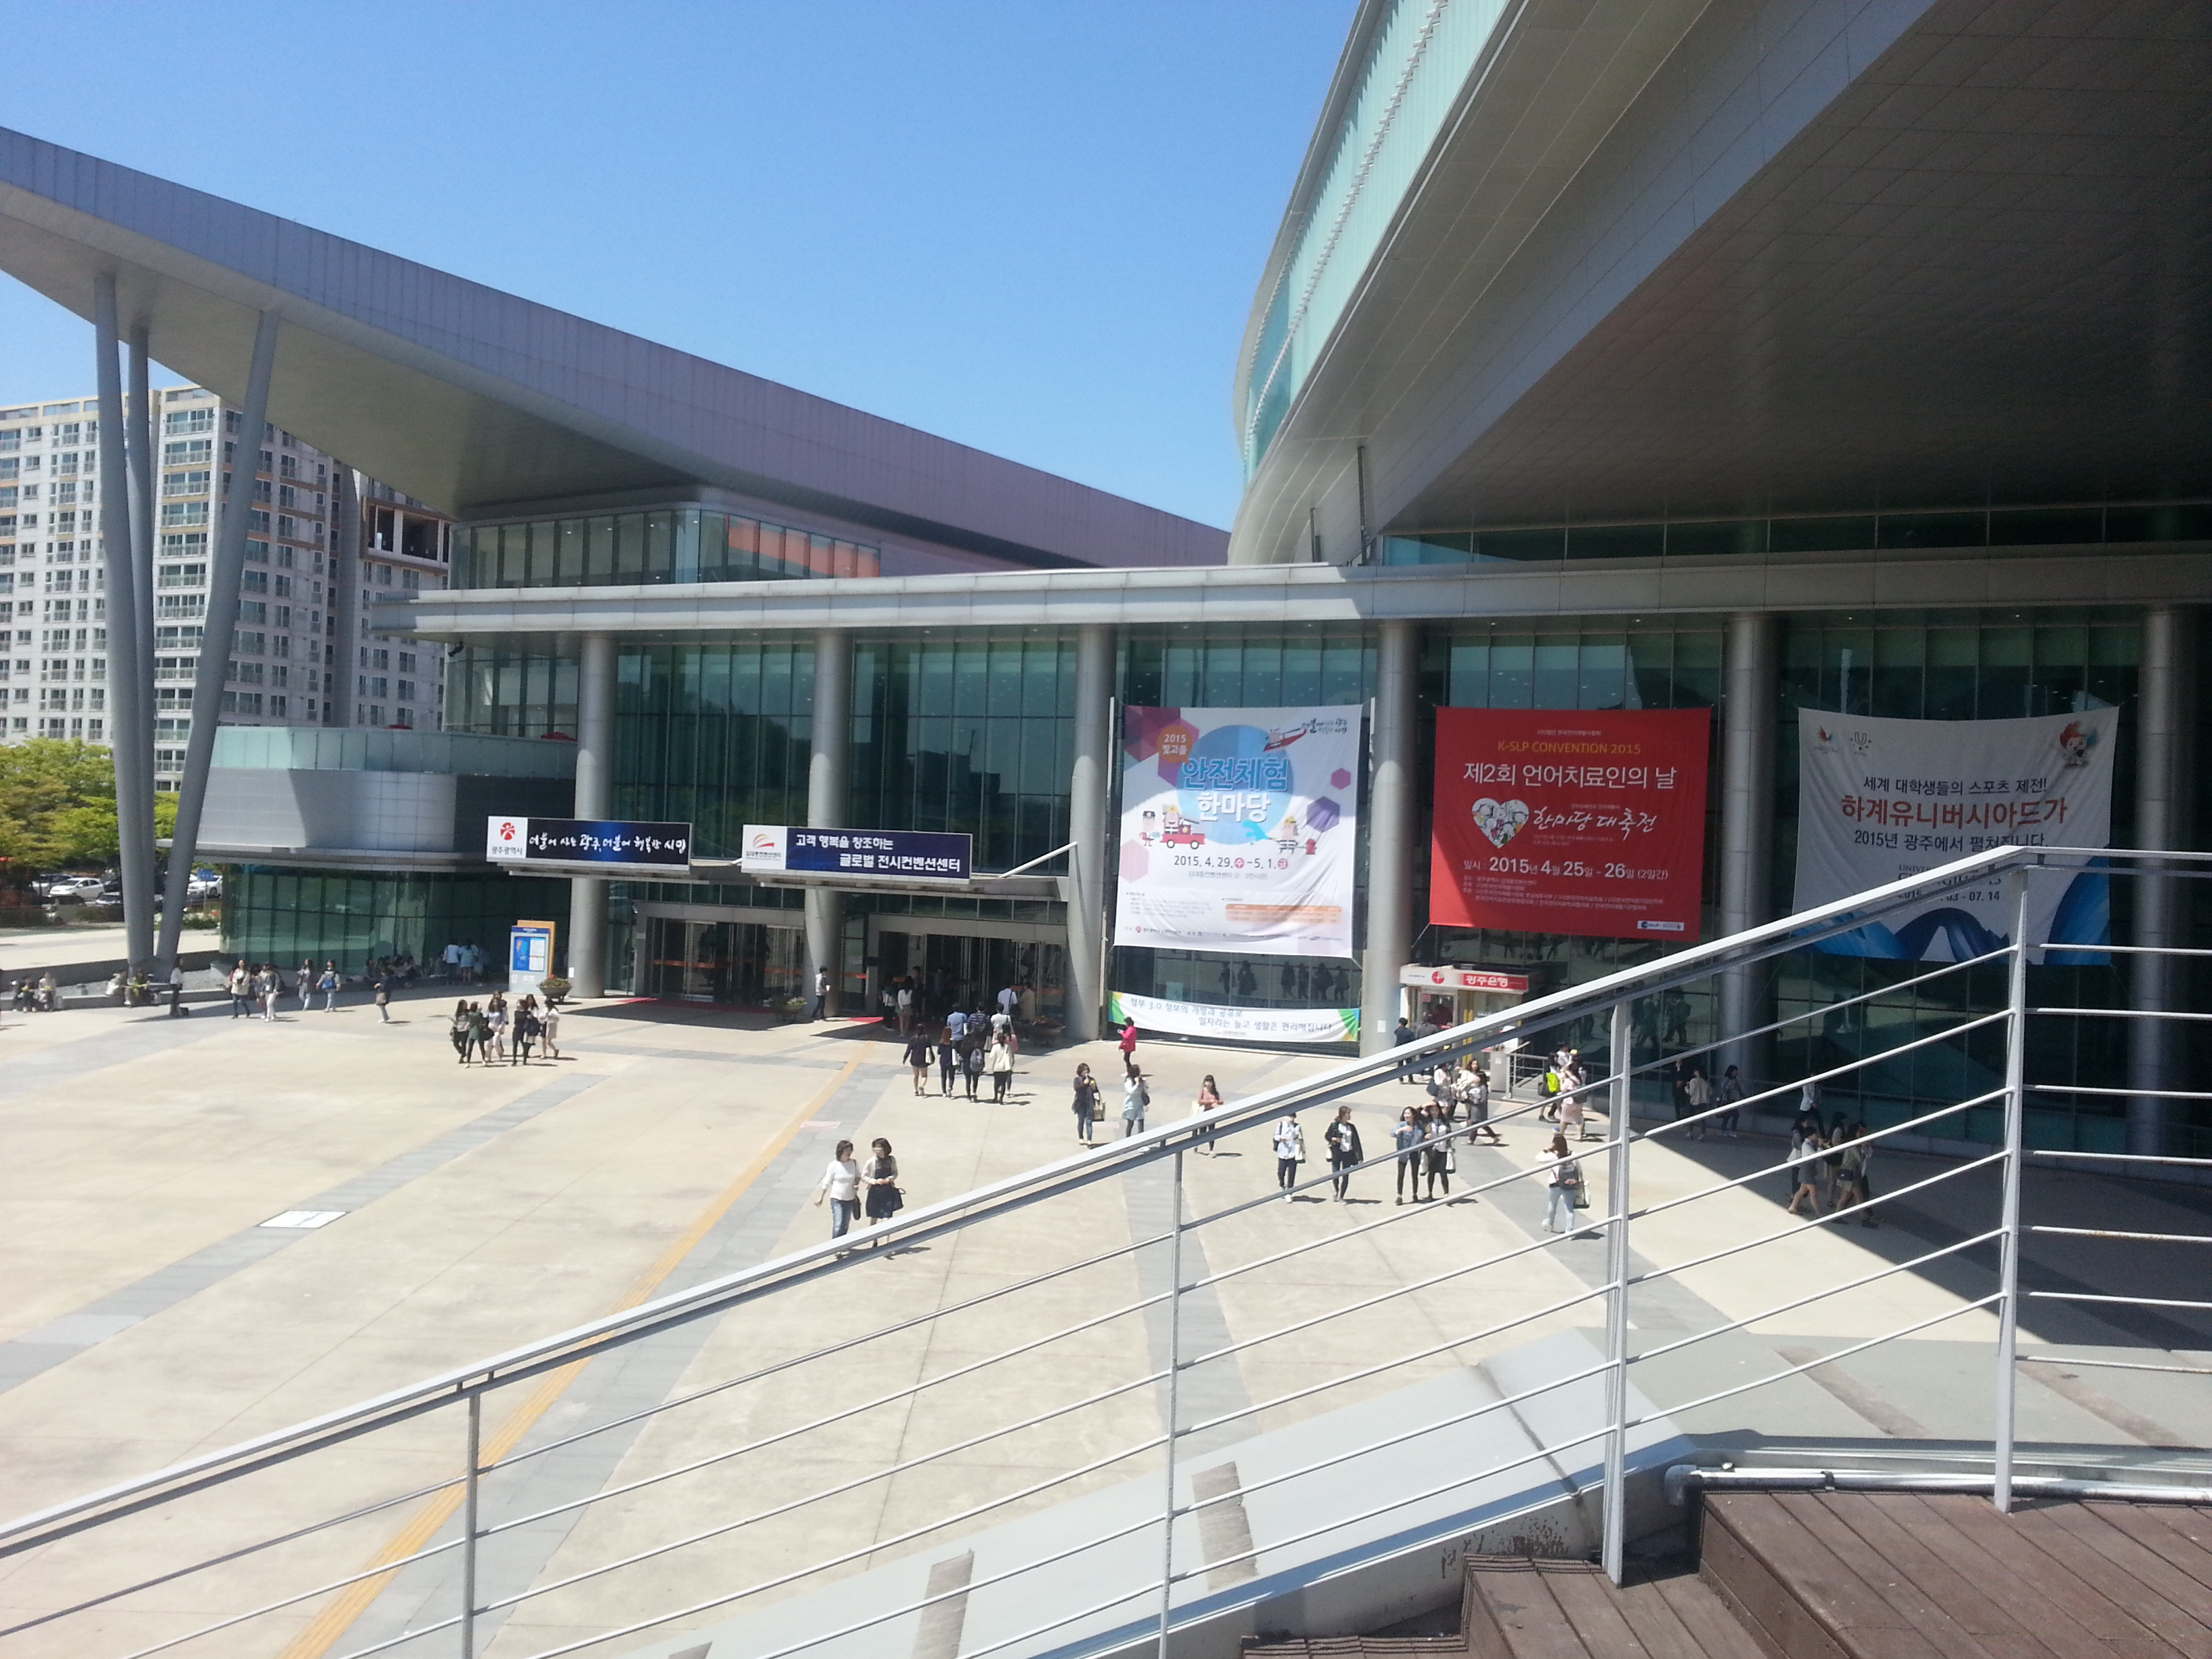 Photo of Kim Dae-jung Convention Center in Gwangju, South Korea for the KSLP Convention